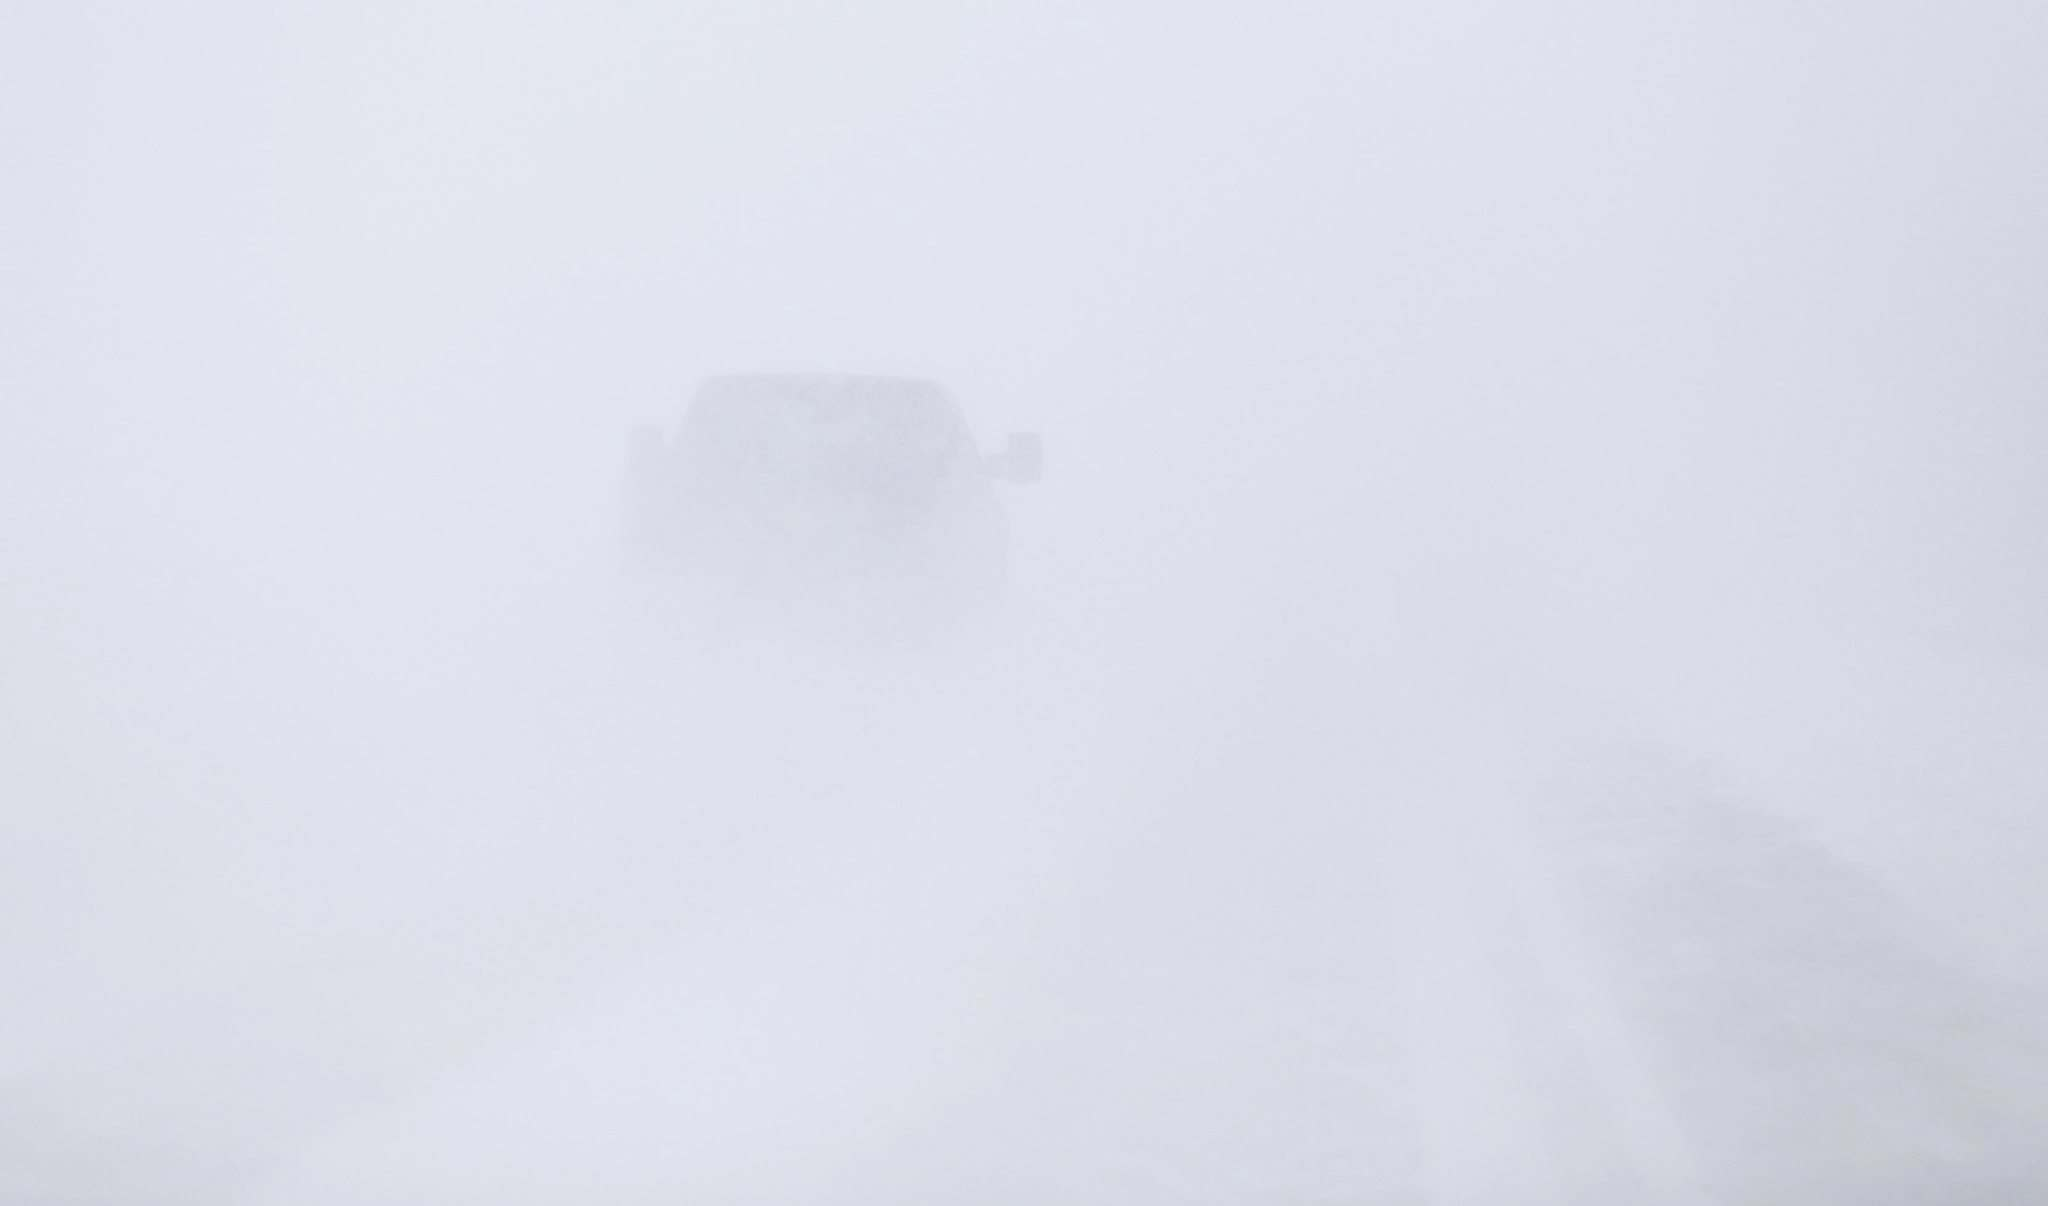 It was a whiteout on the highway near Monticello, Minnesota this morning. Free Press photographer Trevor Hagan was on his way to Minneapolis to cover the Jets/Wild playoff series. </p>